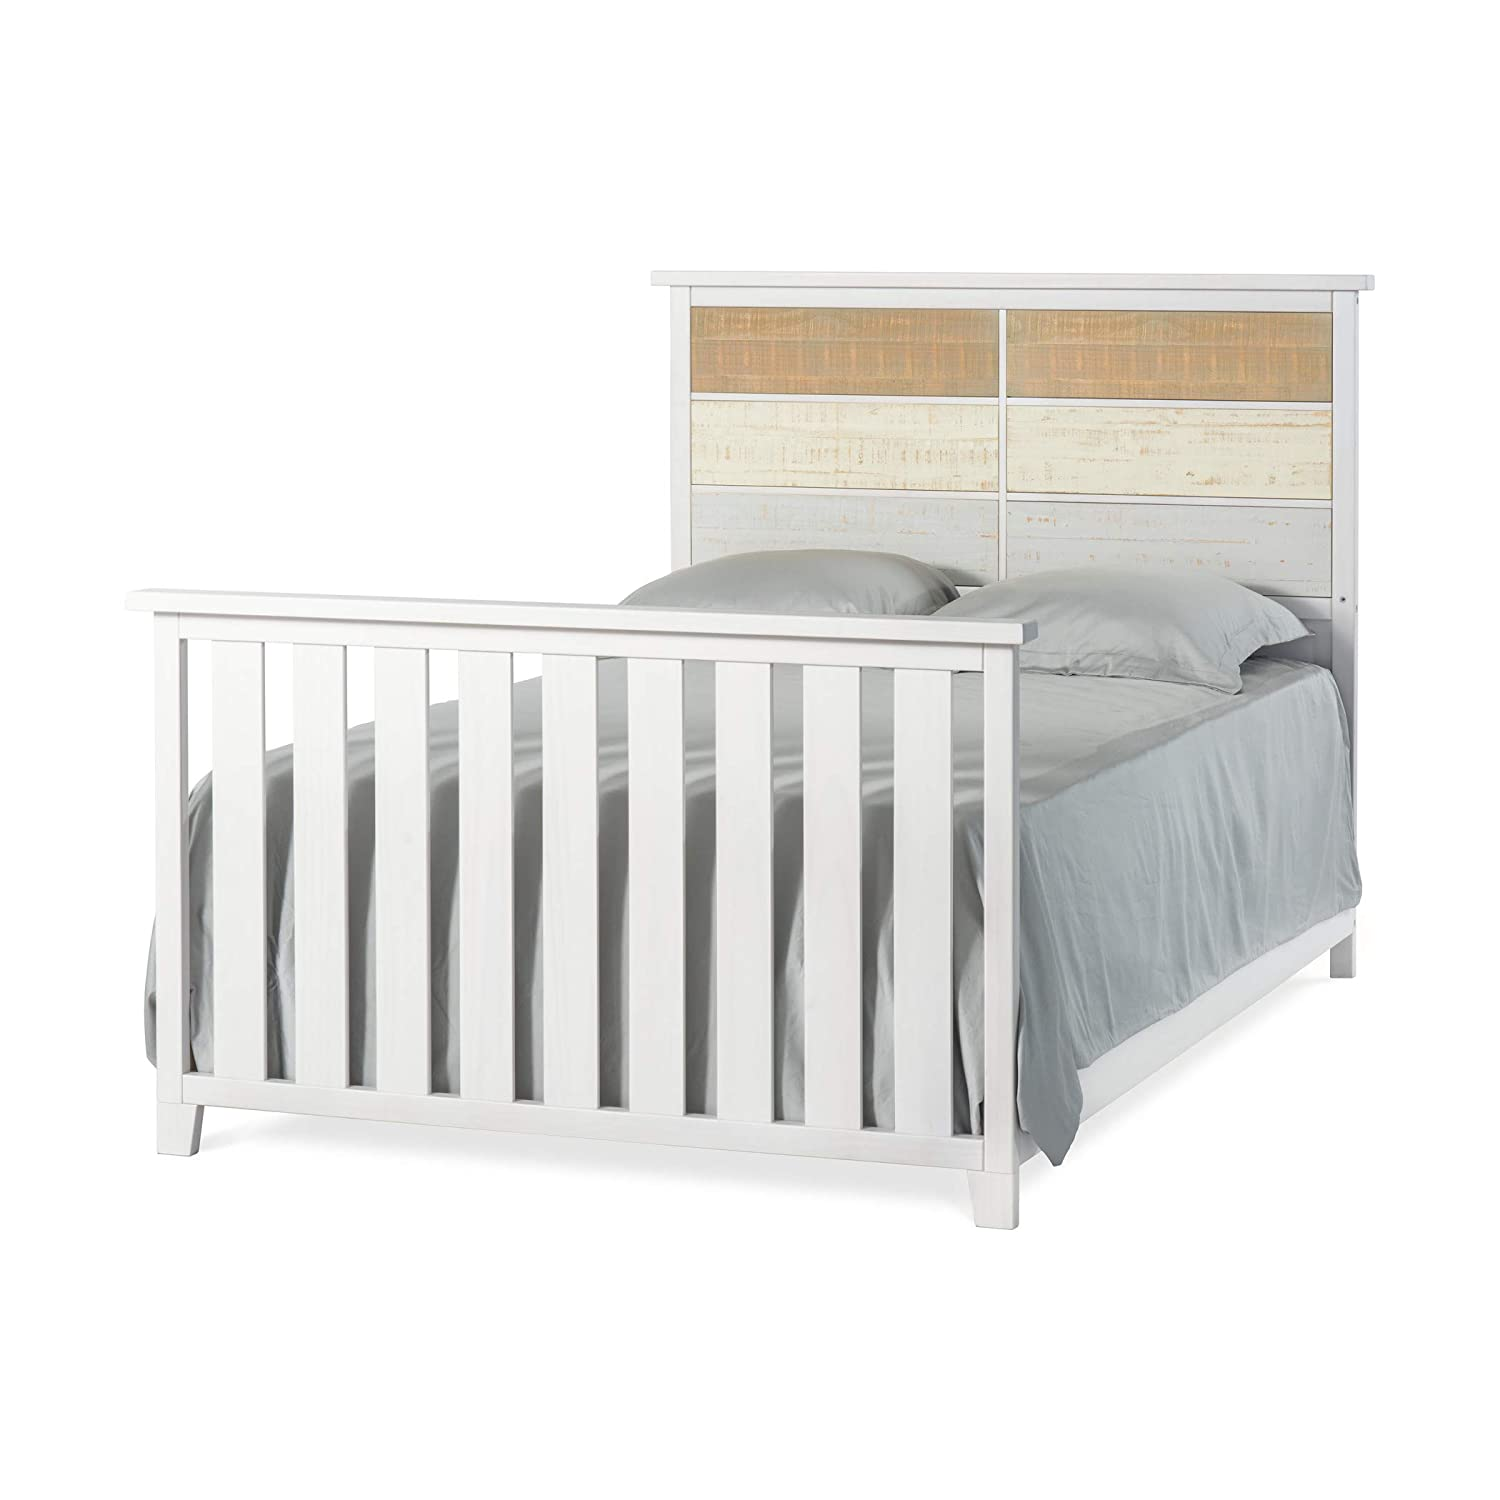 Sandstone Forever Eclectic by Child Craft Rockport 4-in-1 Convertible Crib